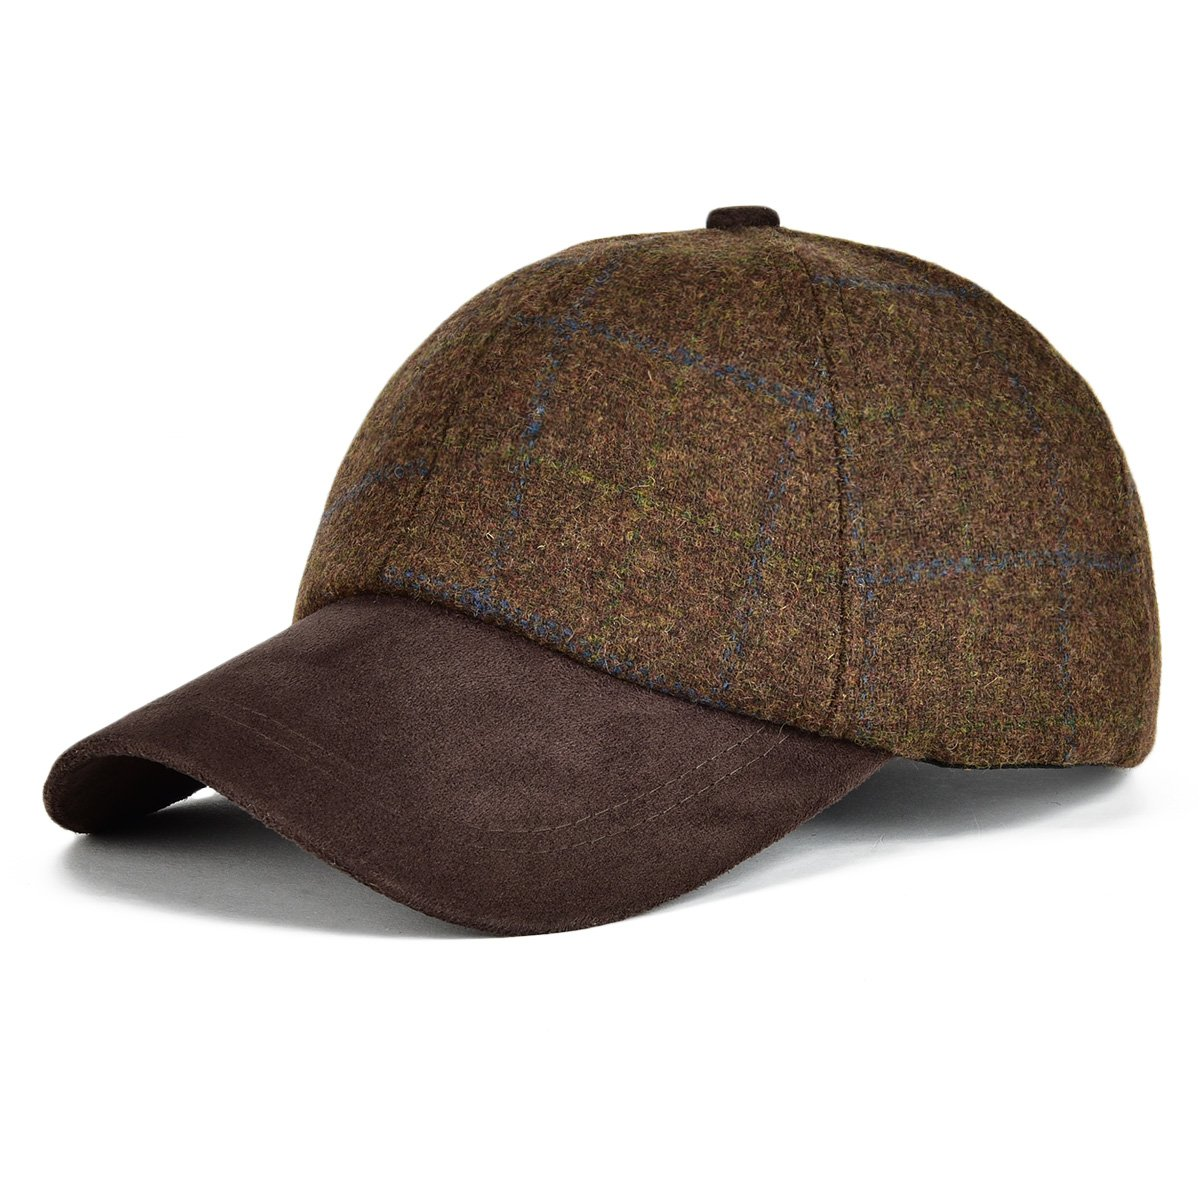 VOBOOM Men's Wool Herringbone Baseball Cap Check Woolen Adjustable Suede Peak BDMZ170-Bron